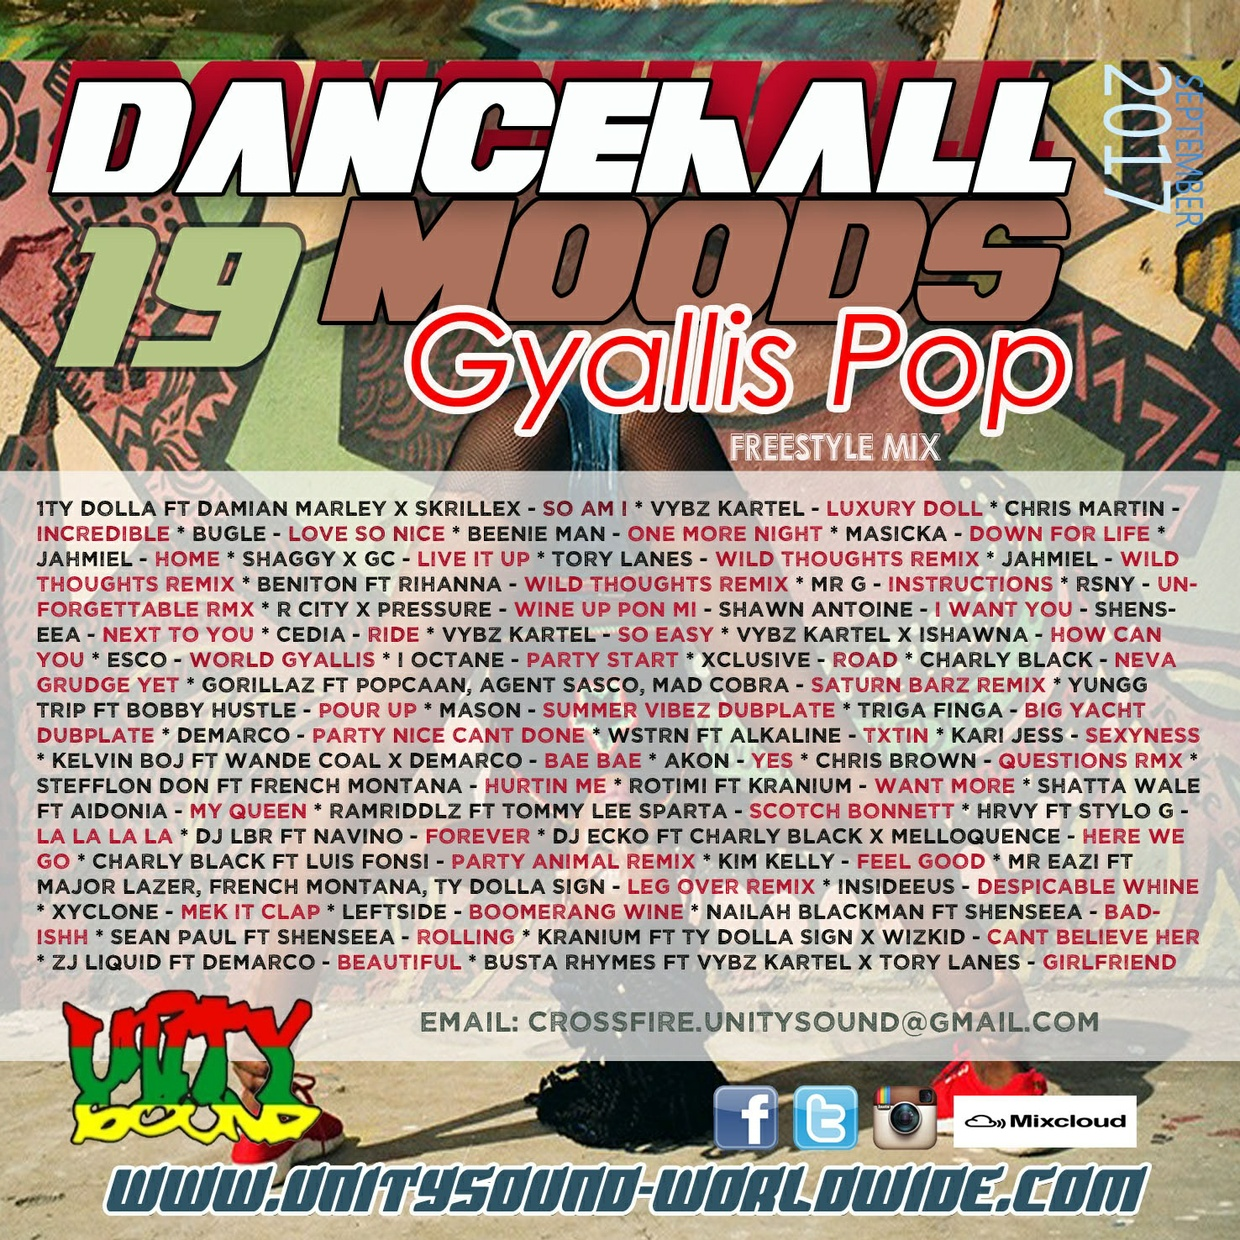 [Multi-Tracked Download] Unity Sound - Dancehall Mood 19 - Gyallis Pop Freestyle Mix 2017